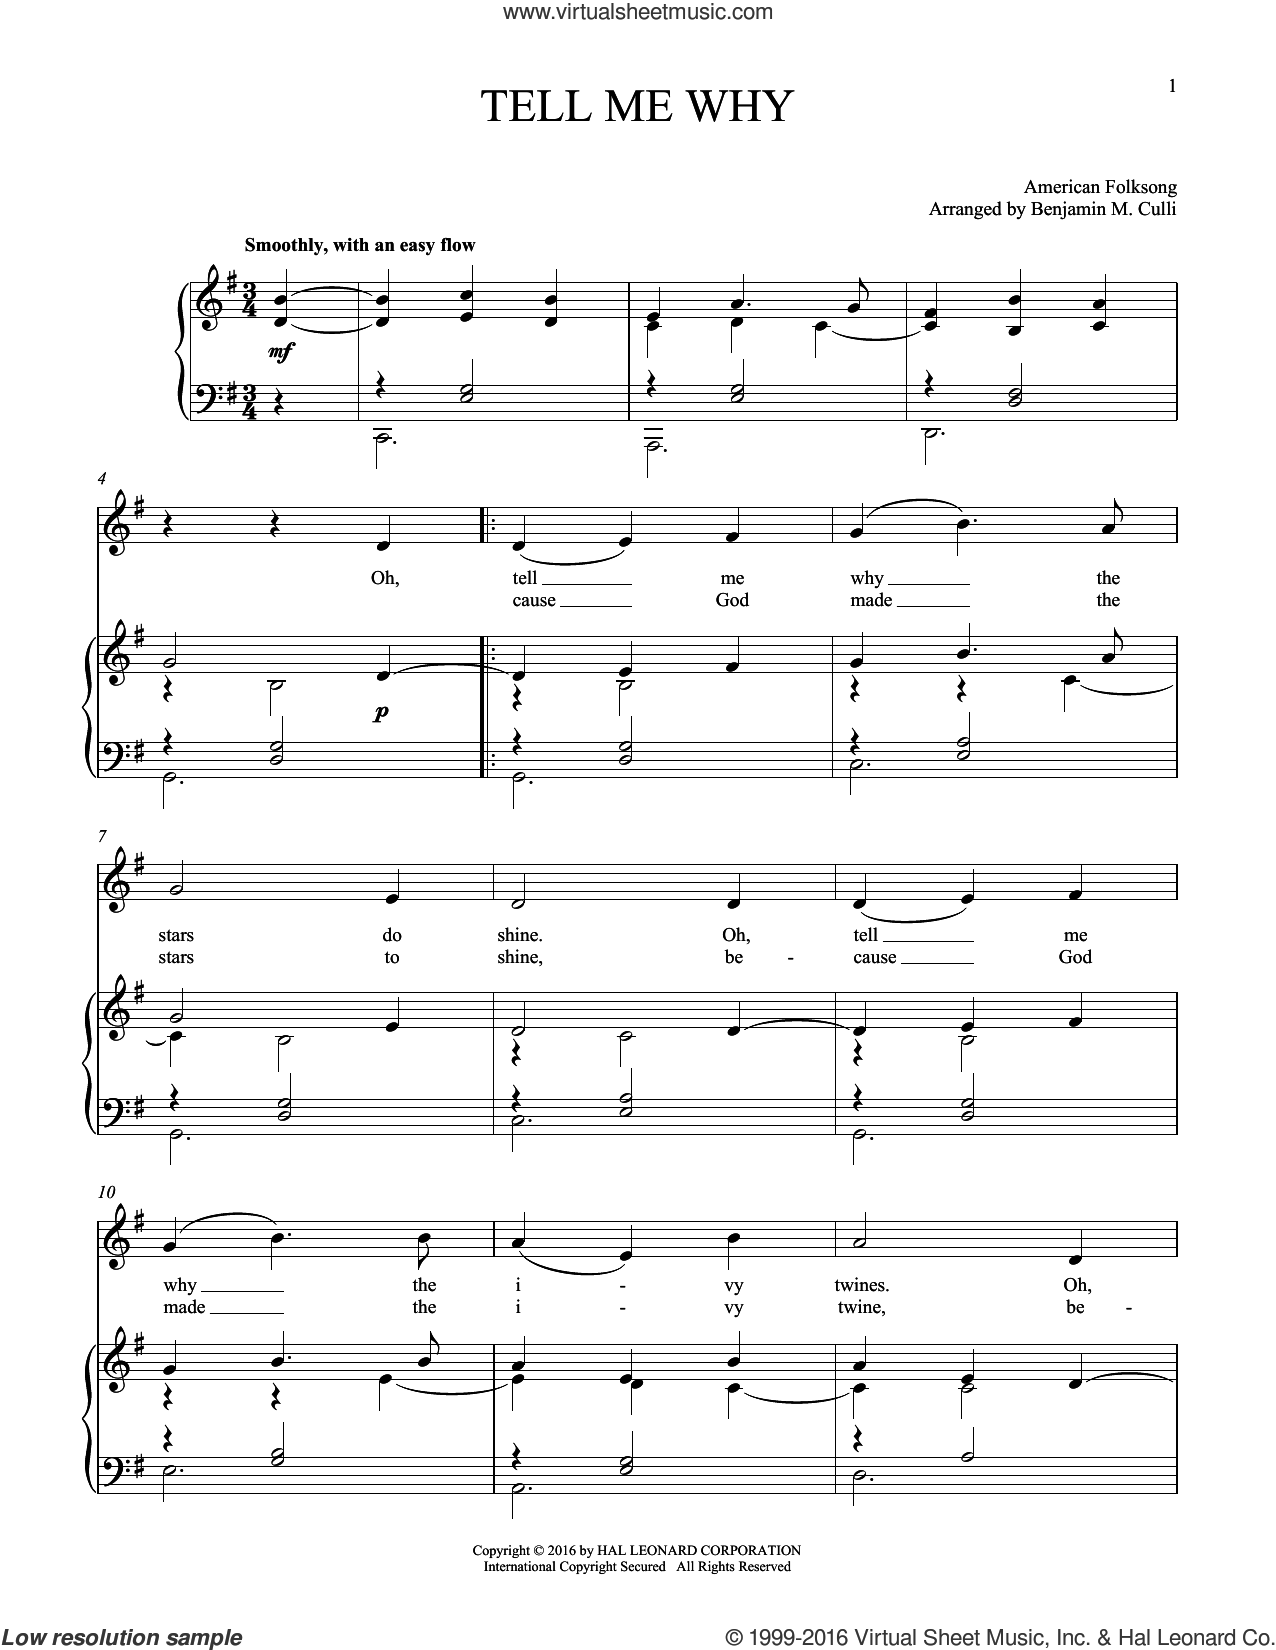 Tell Me Why sheet music for voice and piano by American Folksong, intermediate. Score Image Preview.